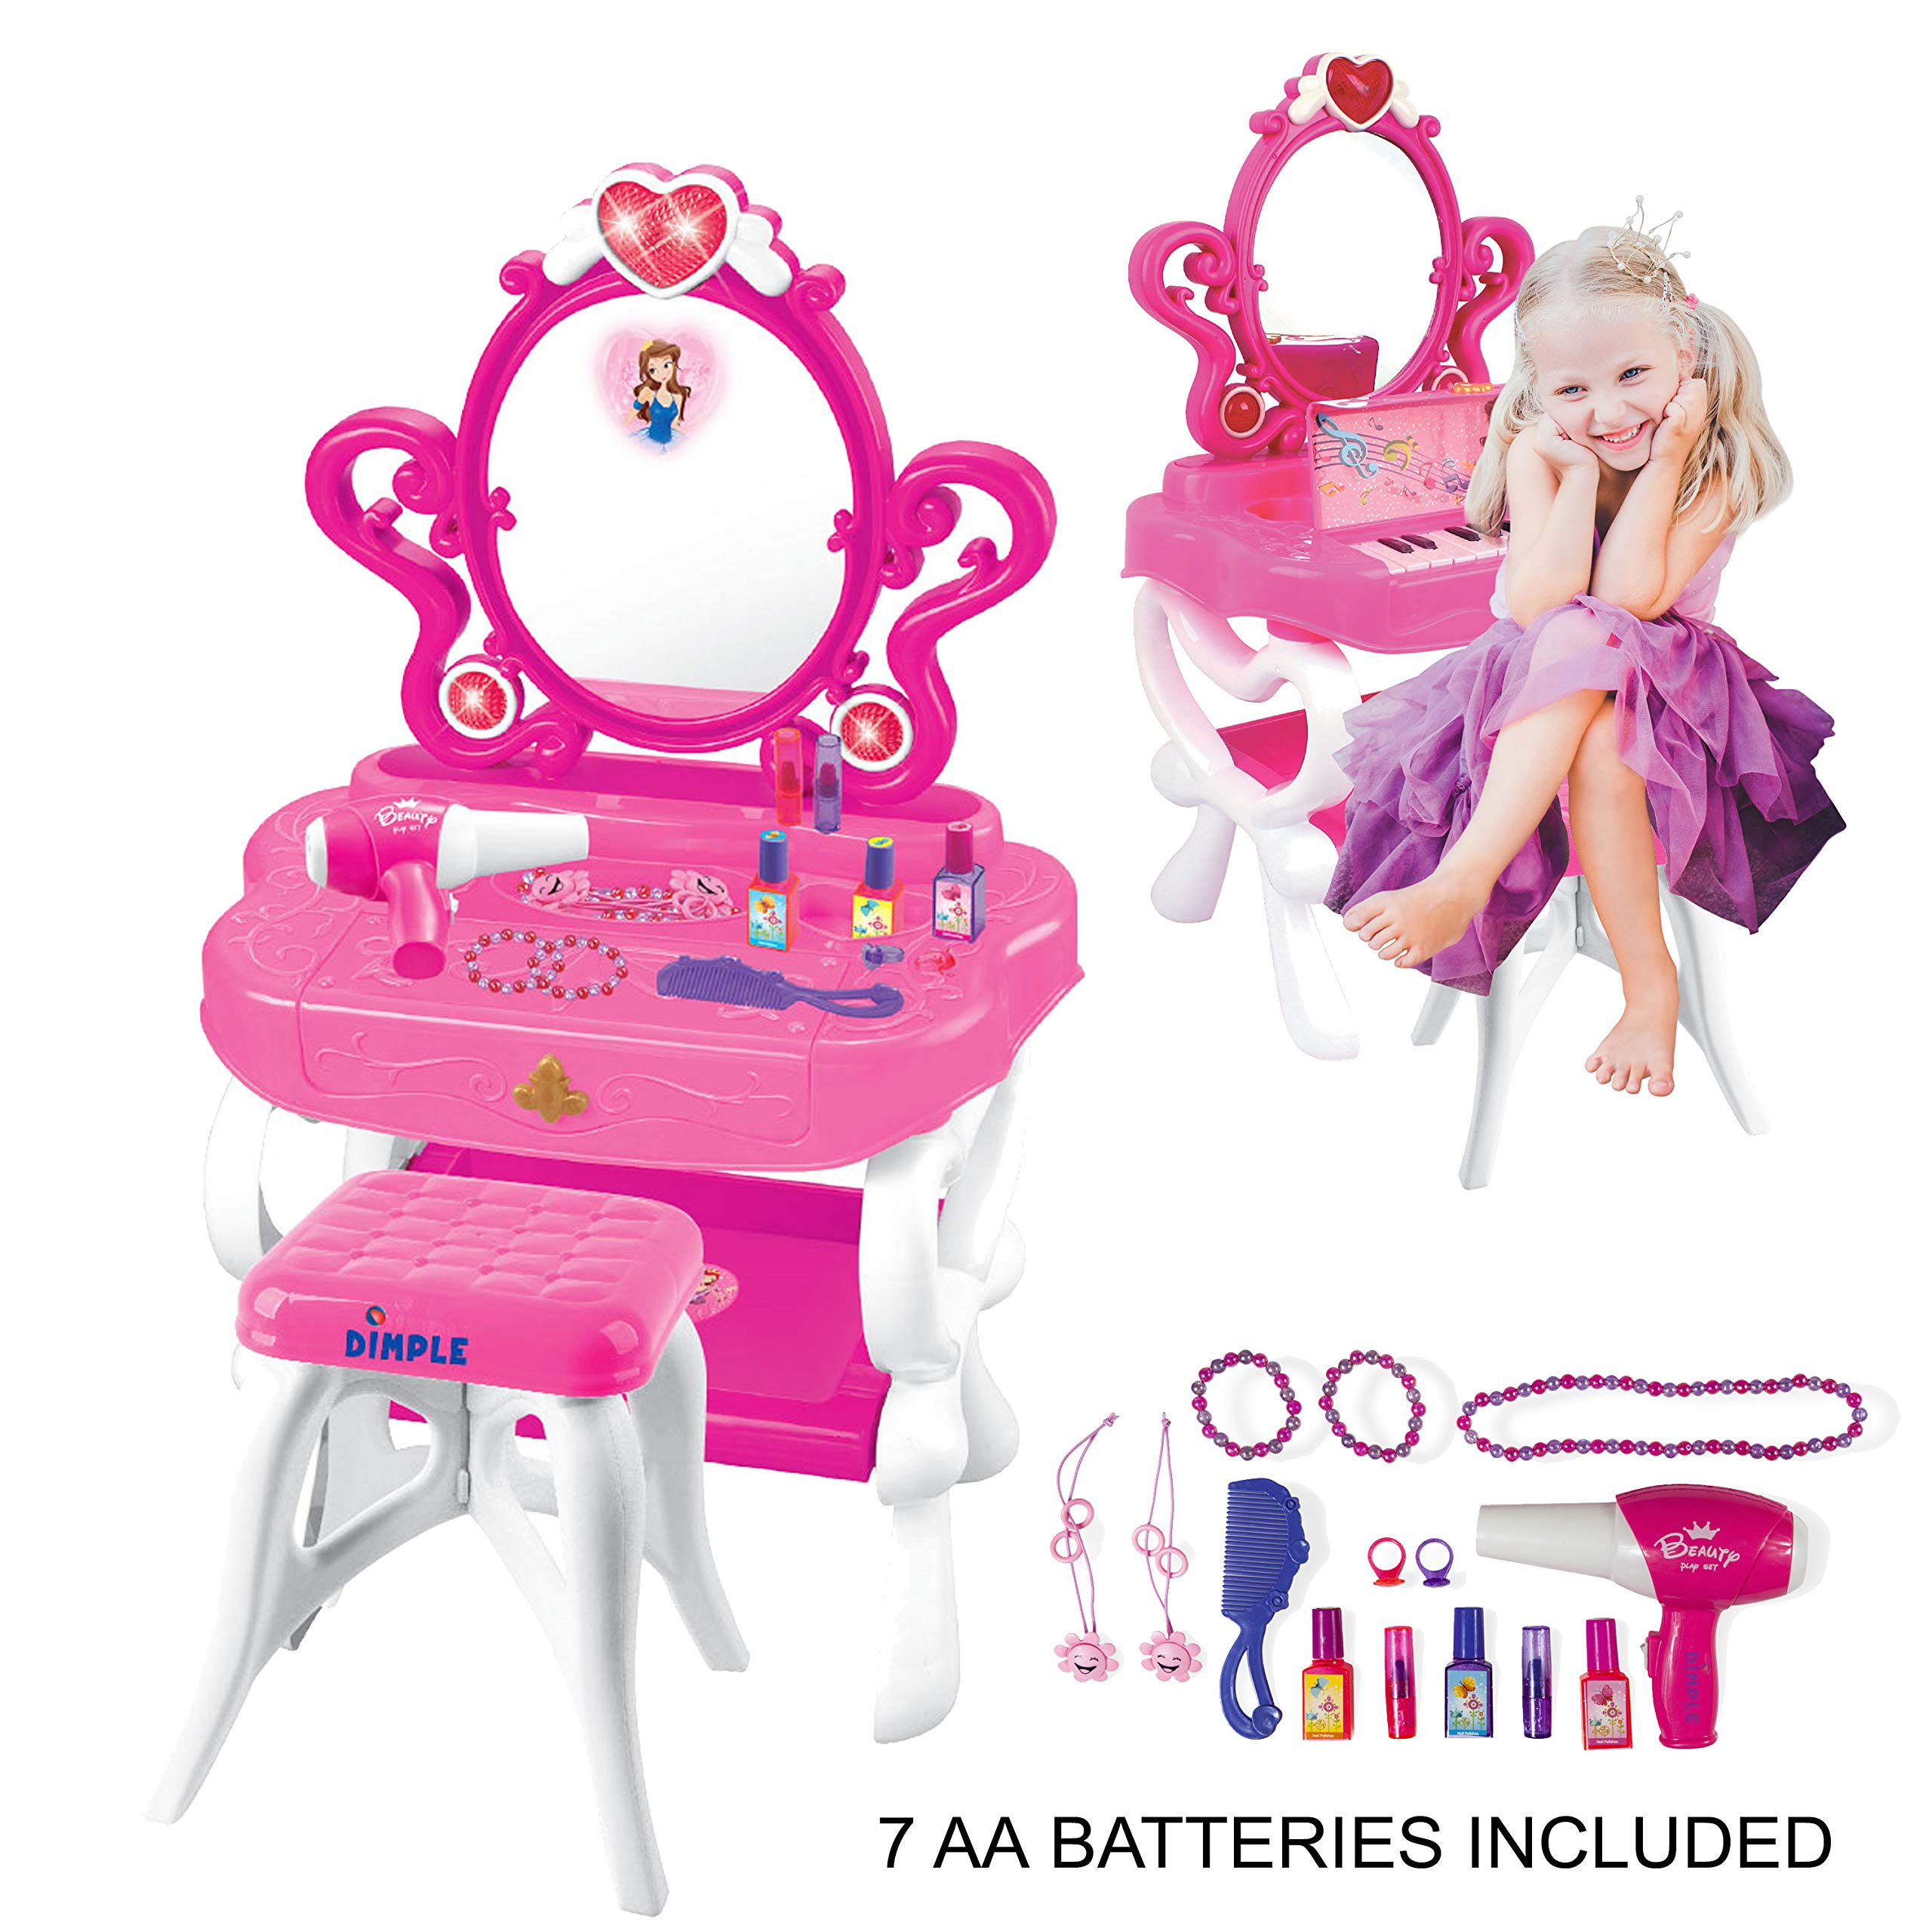 2-in-1 Musical Piano Vanity Set Girls Toy Makeup Accessories with Working Piano & Flashing Lights, Big Mirror, Pretend Cosmetics, Hair Dryer - Princess Image Appears in Mirror, 7 AA Batteries Included by Dimple